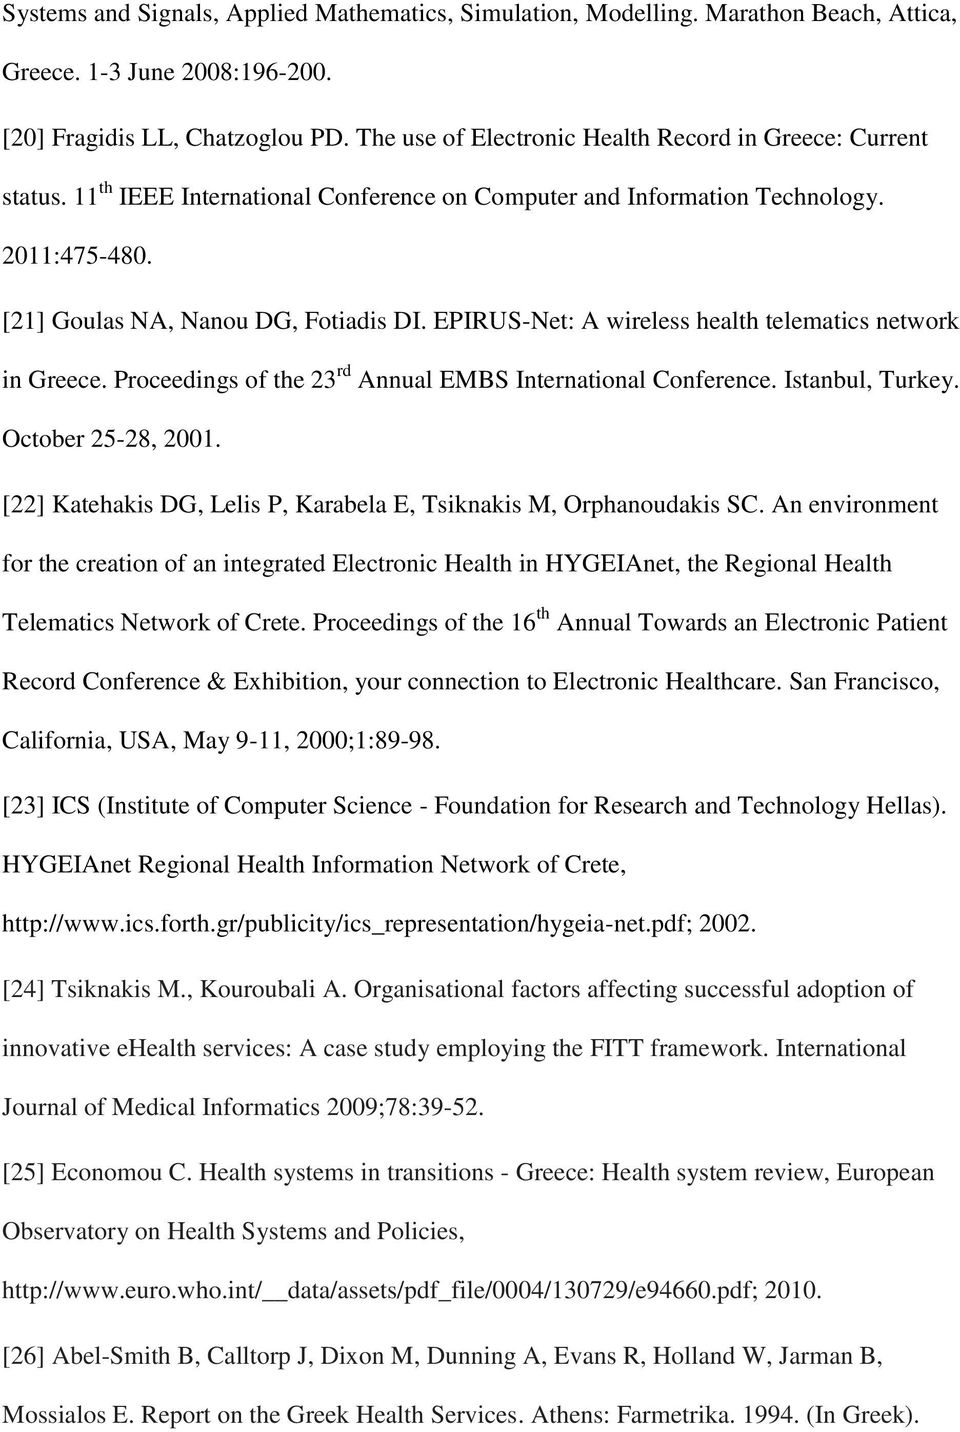 EPIRUS-Net: A wireless health telematics network in Greece. Proceedings of the 23 rd Annual EMBS International Conference. Istanbul, Turkey. October 25-28, 2001.